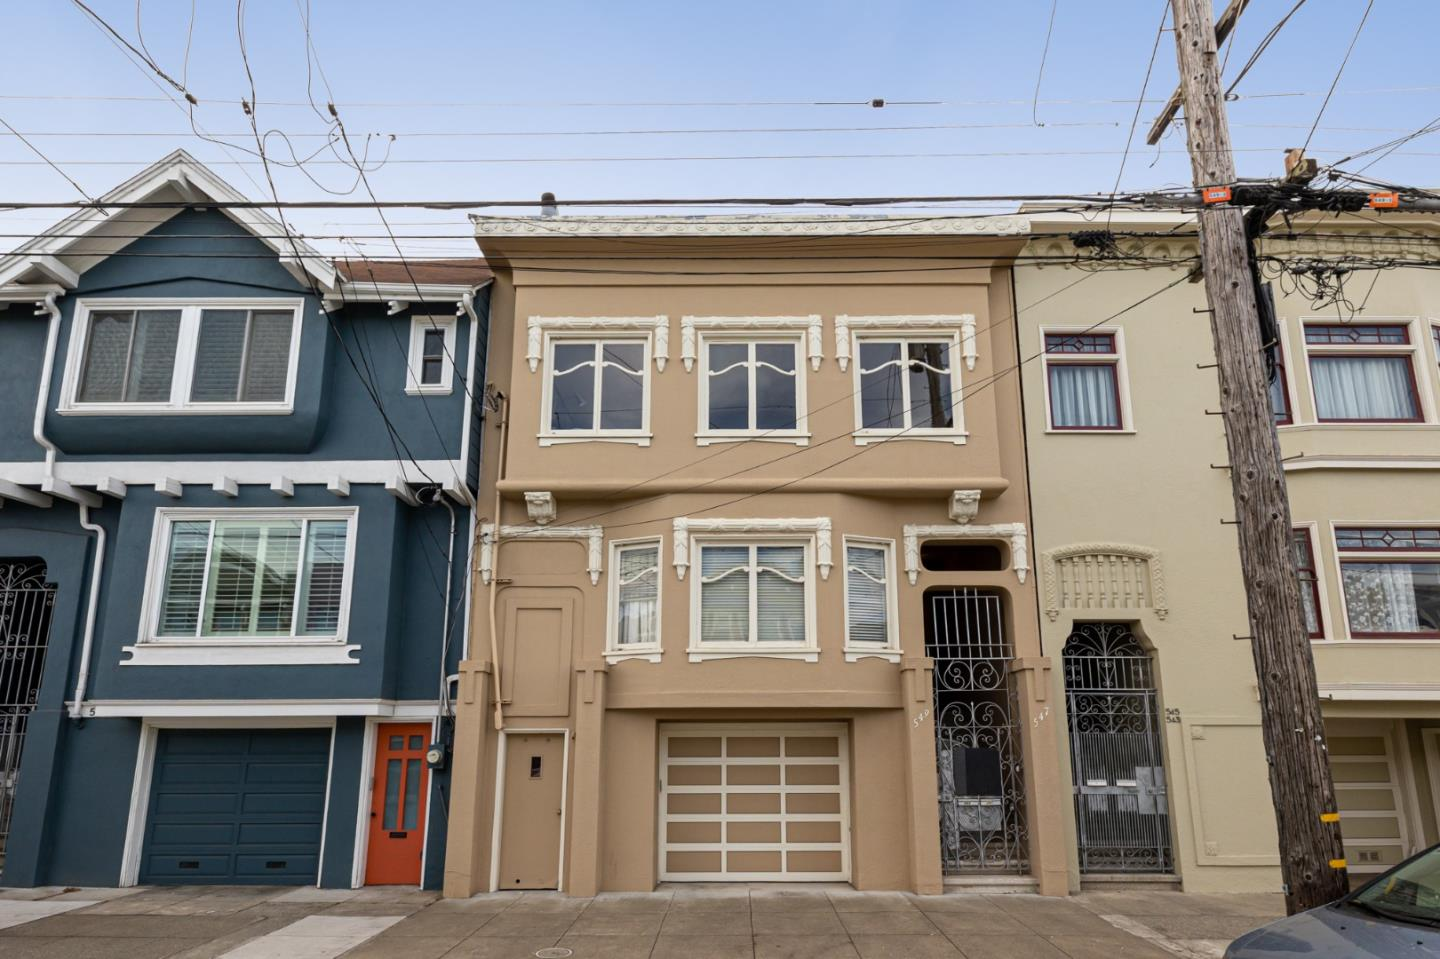 Located in Central Richmond, 547 19th AVE is a must see.  This spacious top floor condo in a two-unit Edwardian duplex is conveniently located just two blocks away from both Golden Gate Park and all the restaurants & conveniences of Geary St.  The flat has been remodeled and freshly painted.  It includes a chefs kitchen outfitted with stone counters, gas cooktop, pantry and plenty of cabinet space.  Enjoy two large bedrooms and a bonus sunroom that overlooks a shared manicured garden with ample space for outdoor activities.  With a sizeable formal dining room as well, the home offers an abundance of options to comfortably work from home.  Hardwood floors cover the entire home, providing for a clean, cozy San Francisco feel.  The ground level includes an attached 1-car garage for parking and multiple deeded storage areas.